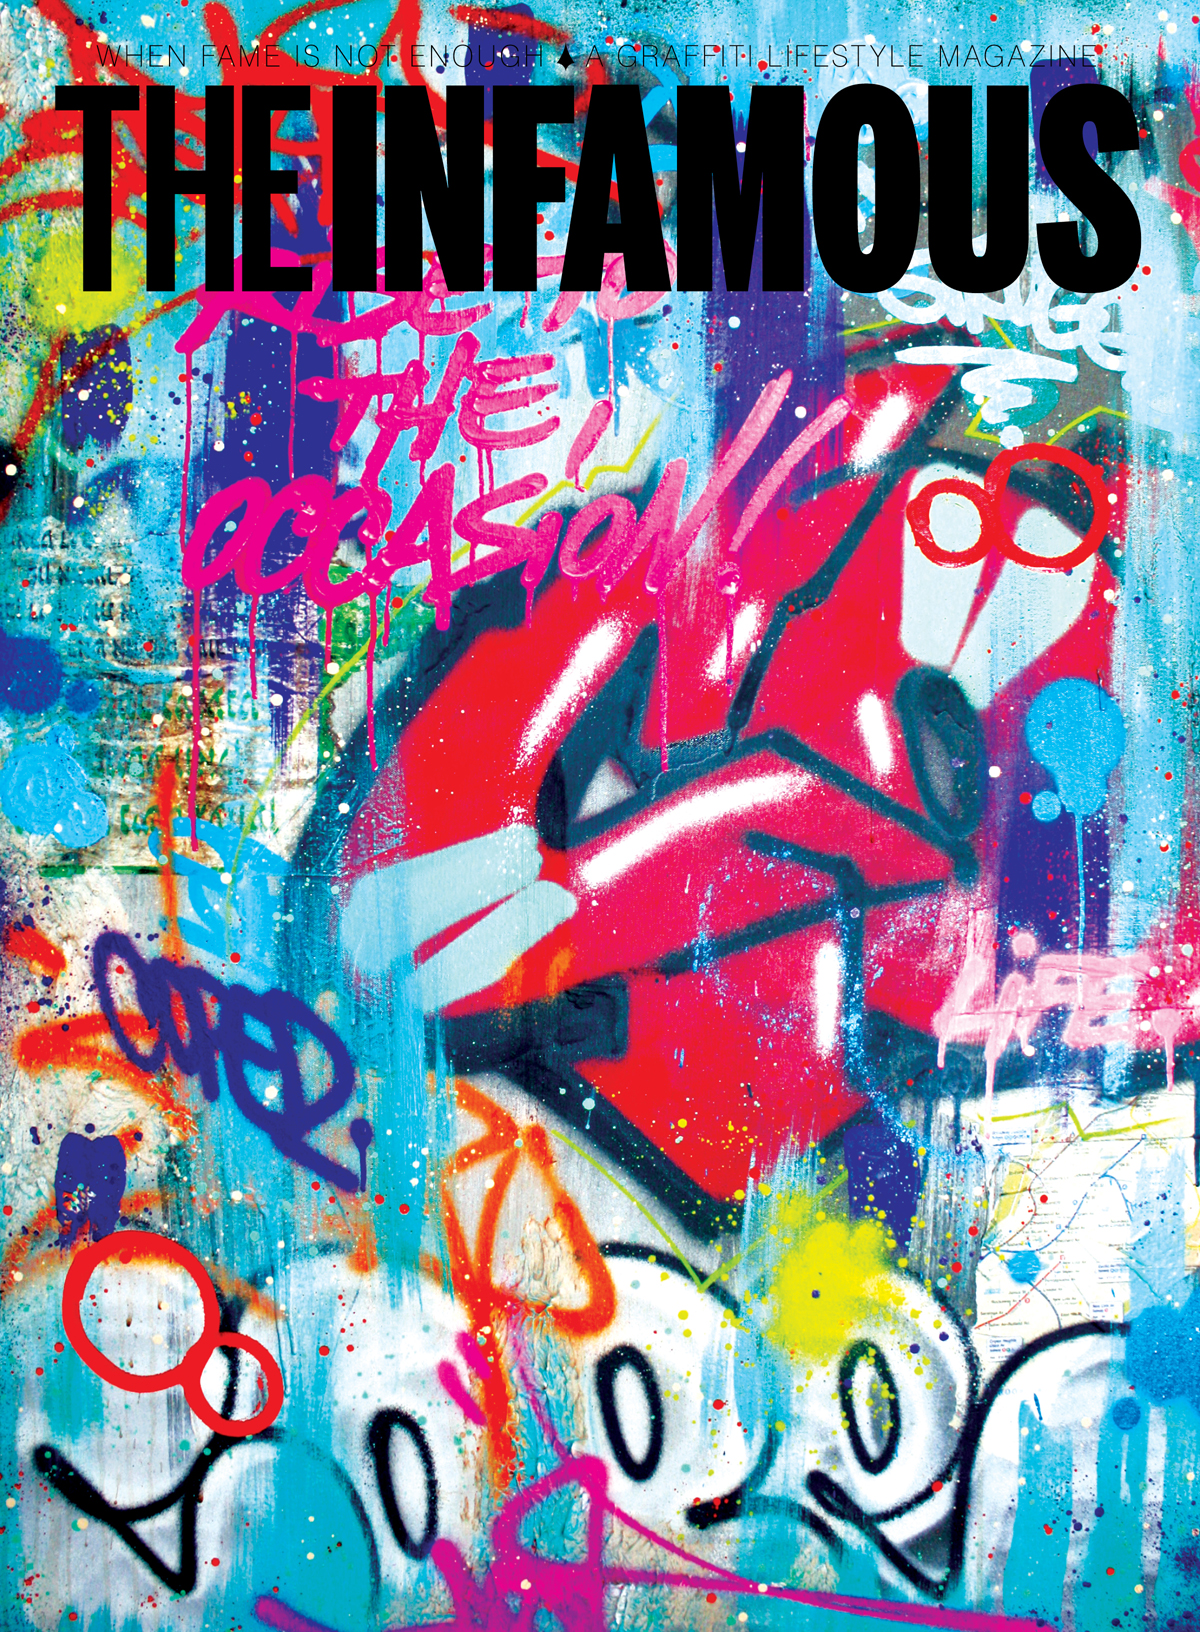 Cover of Issue 6 of The Infamous magazine, 2011. Illustration by Cope.